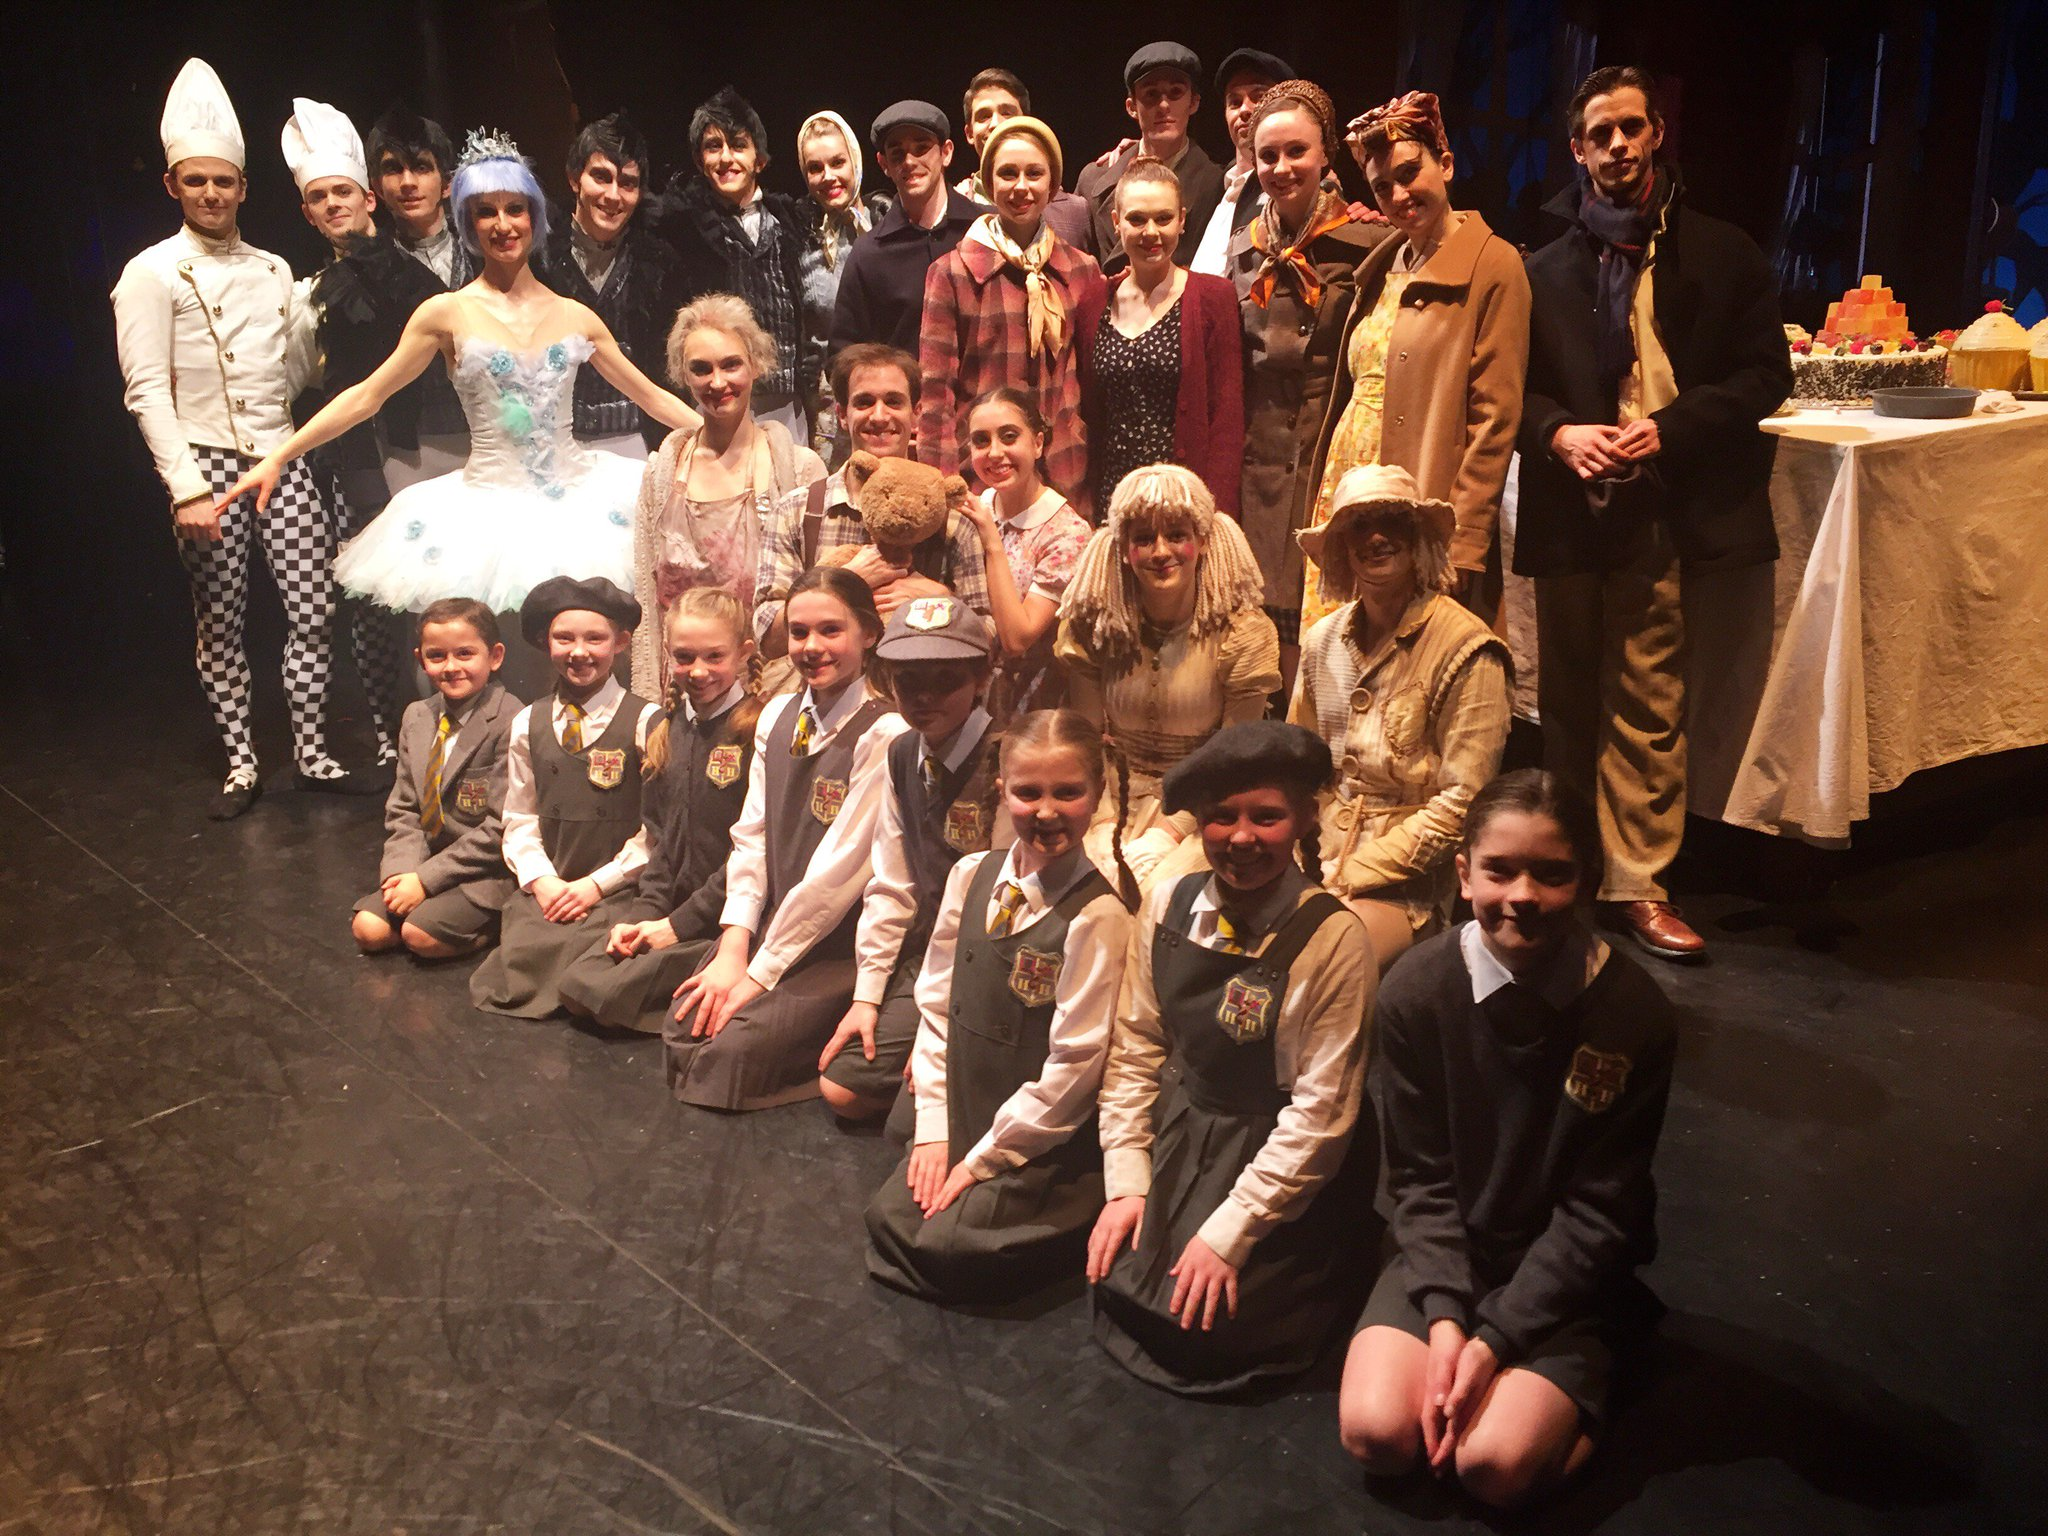 Here is a photo of the Hansel and Gretel cast from @scottishballet @TheatreRoyalNew featuring some of our girls #teamgingerbread https://t.co/vRMZI0YmvR